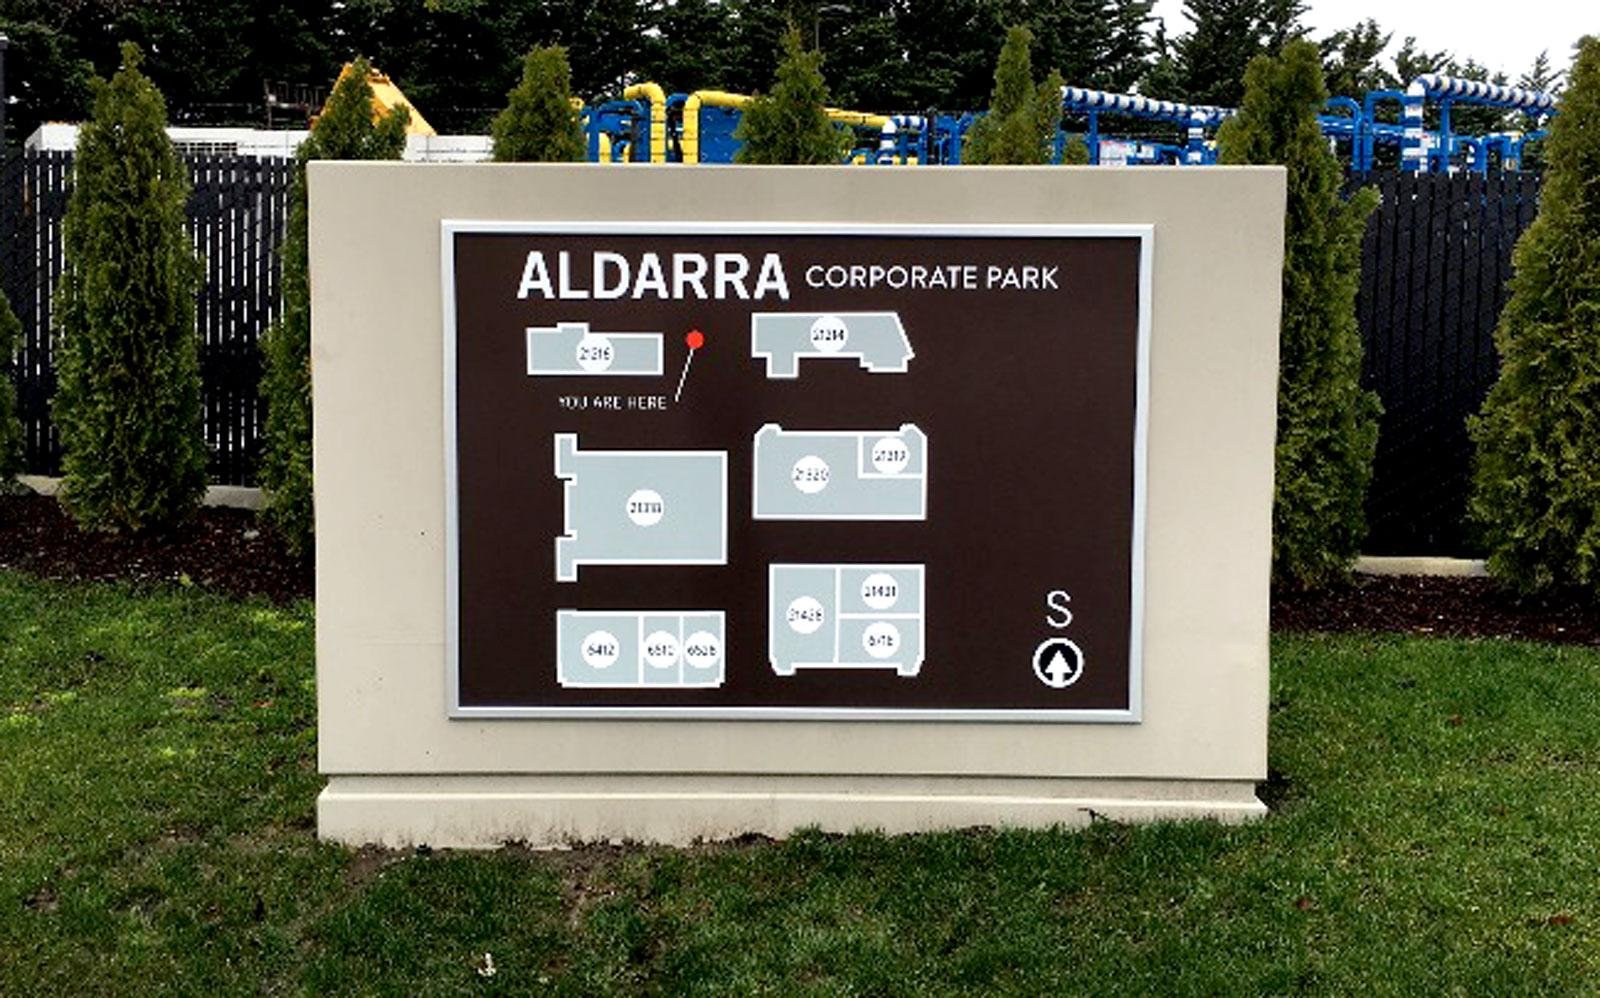 Evergreen permitted and fabricated two directional monument signs for Aldarra Corporate Park.